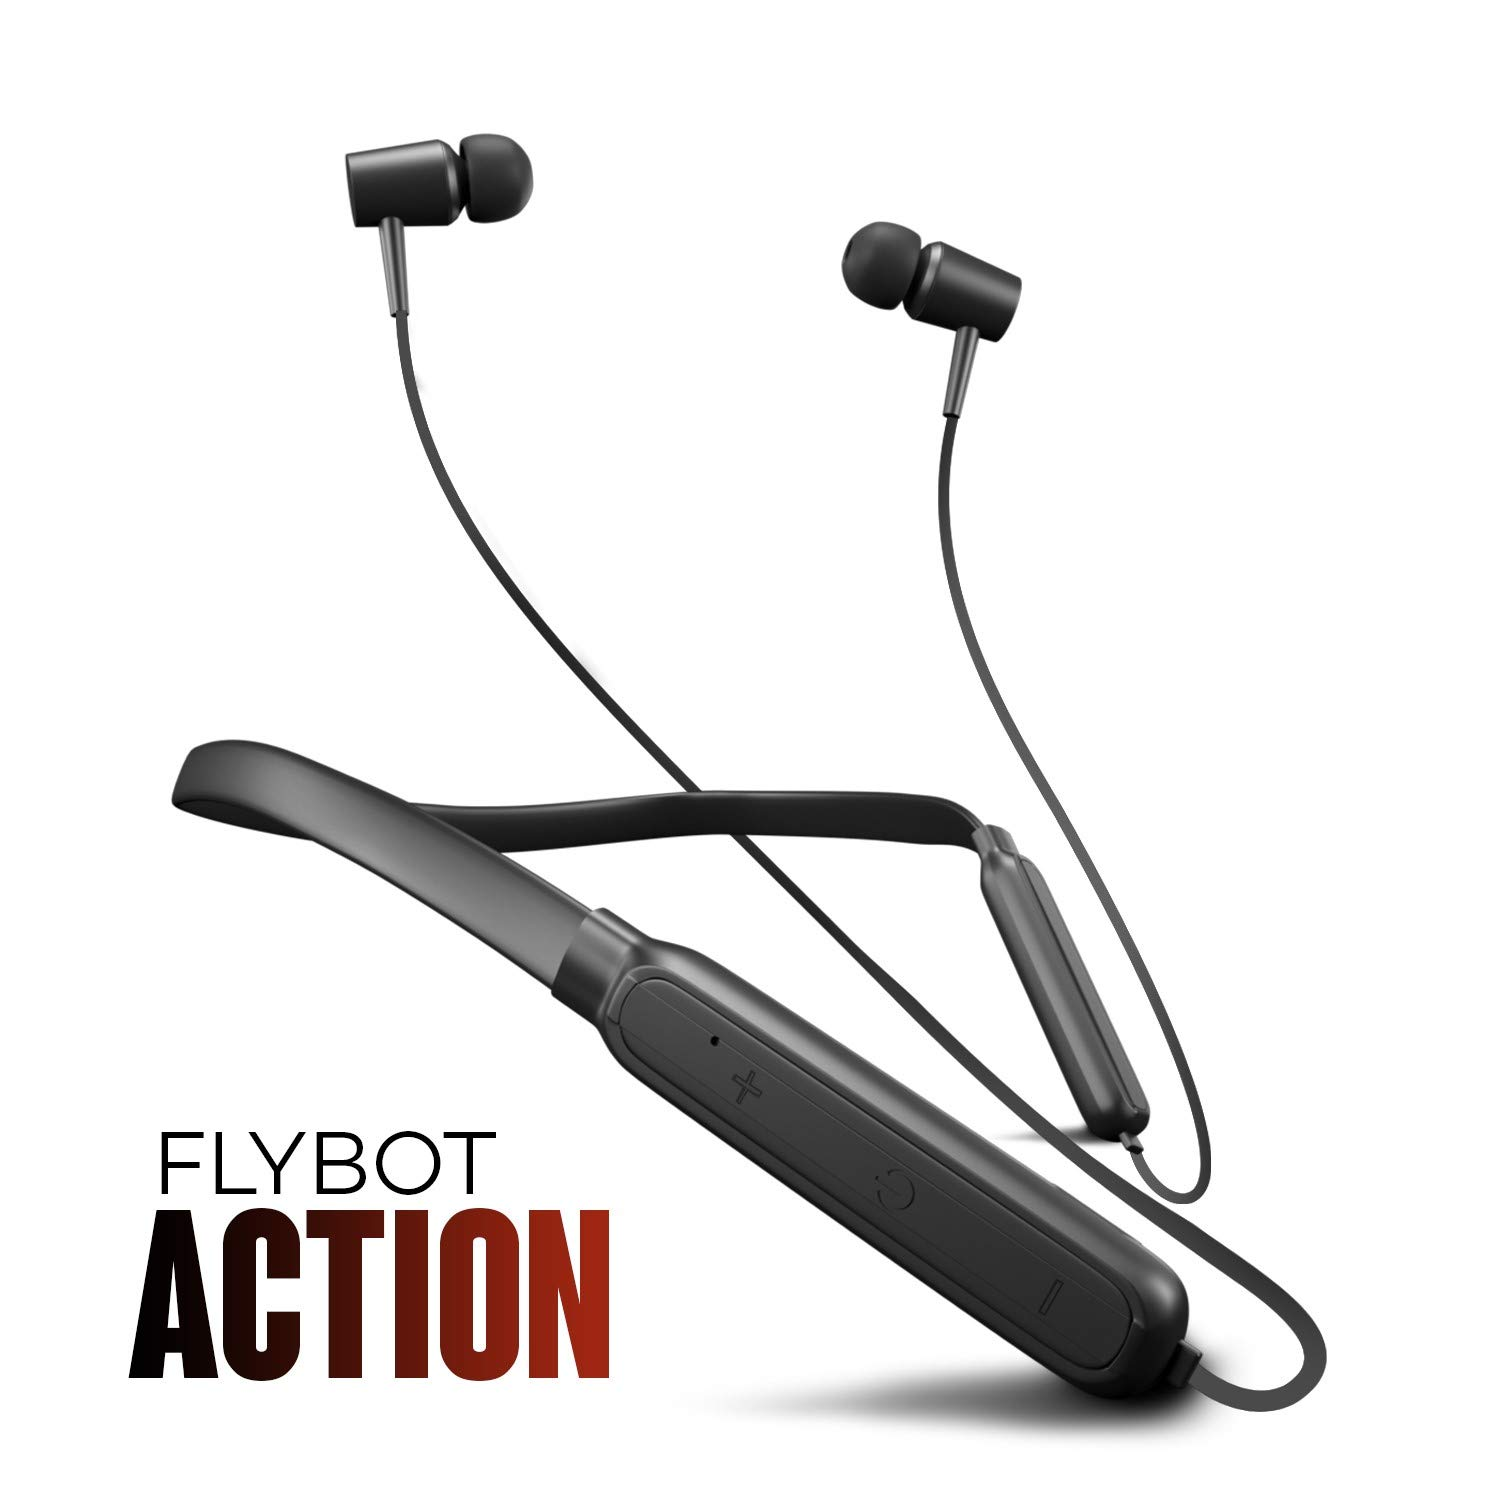 Flybot Action Bluetooth Neckband, Lightweight Wireless And